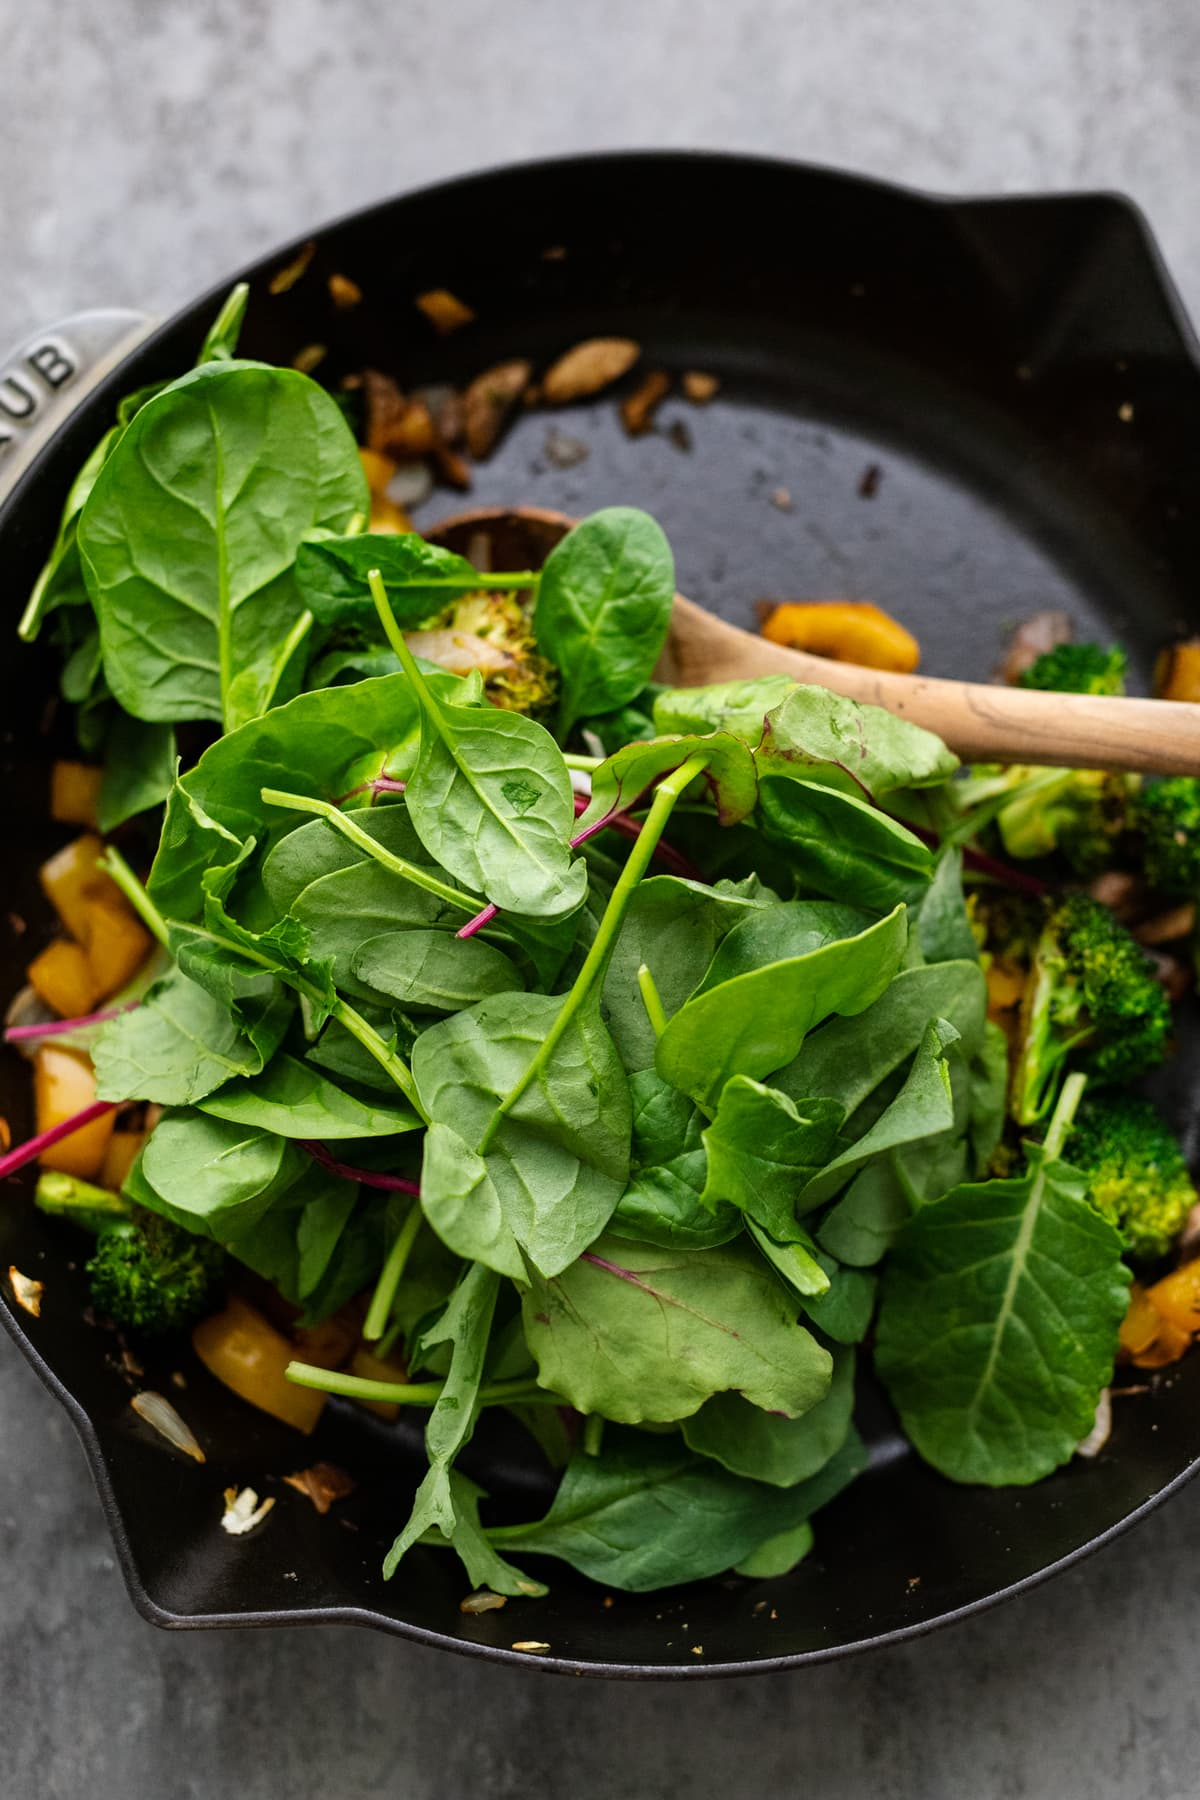 Spinach being folded into sautéed vegetables in a black cast iron skillet.